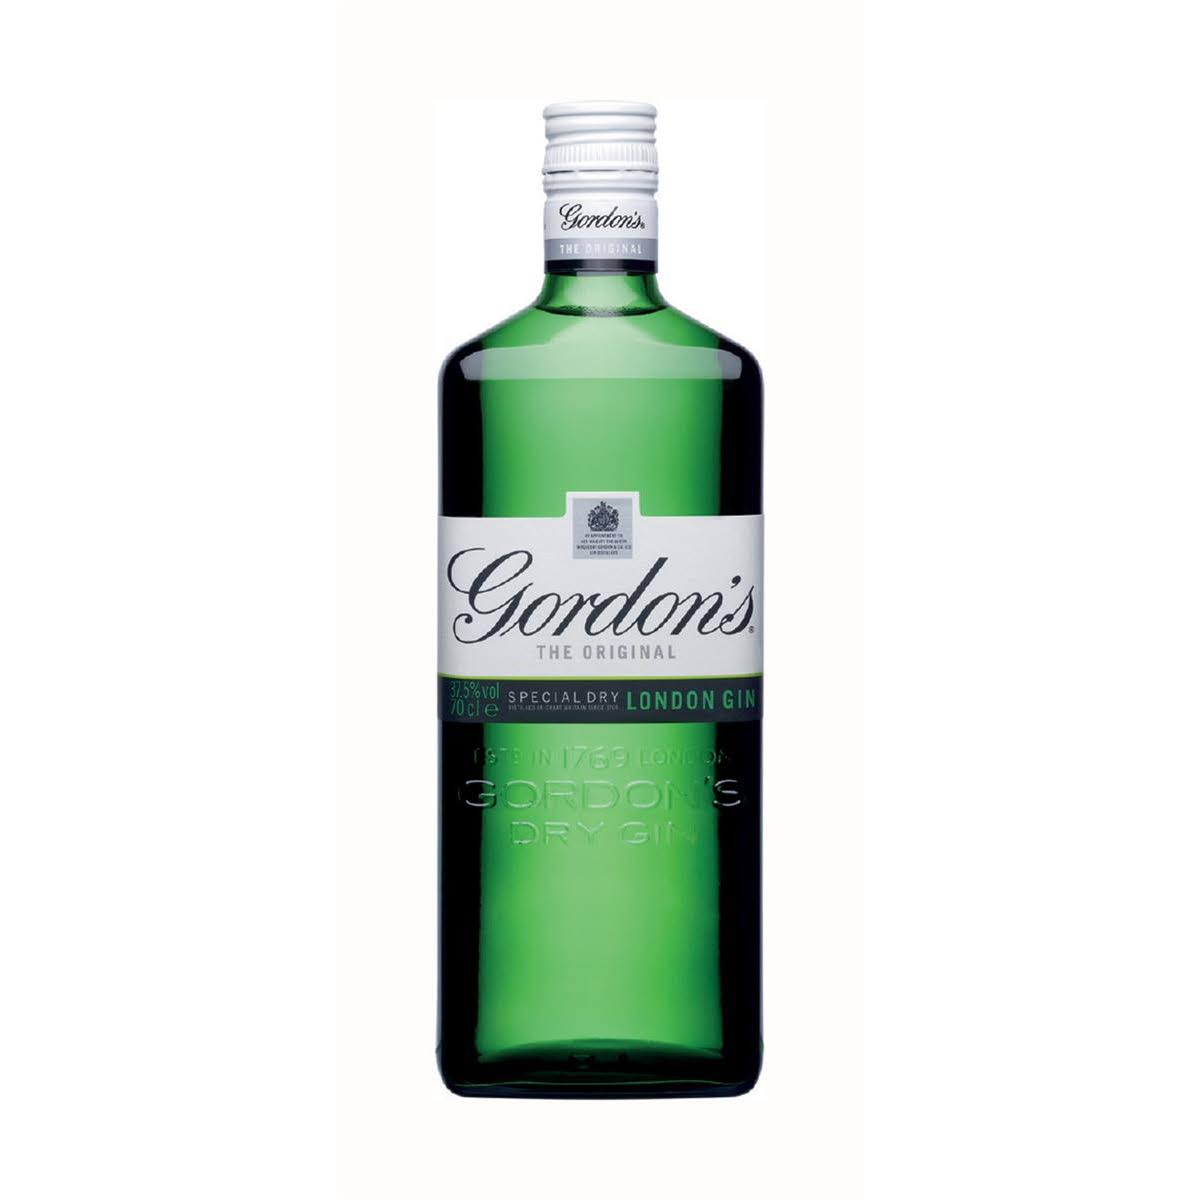 Gordon's Special Dry London Gin - 700ml